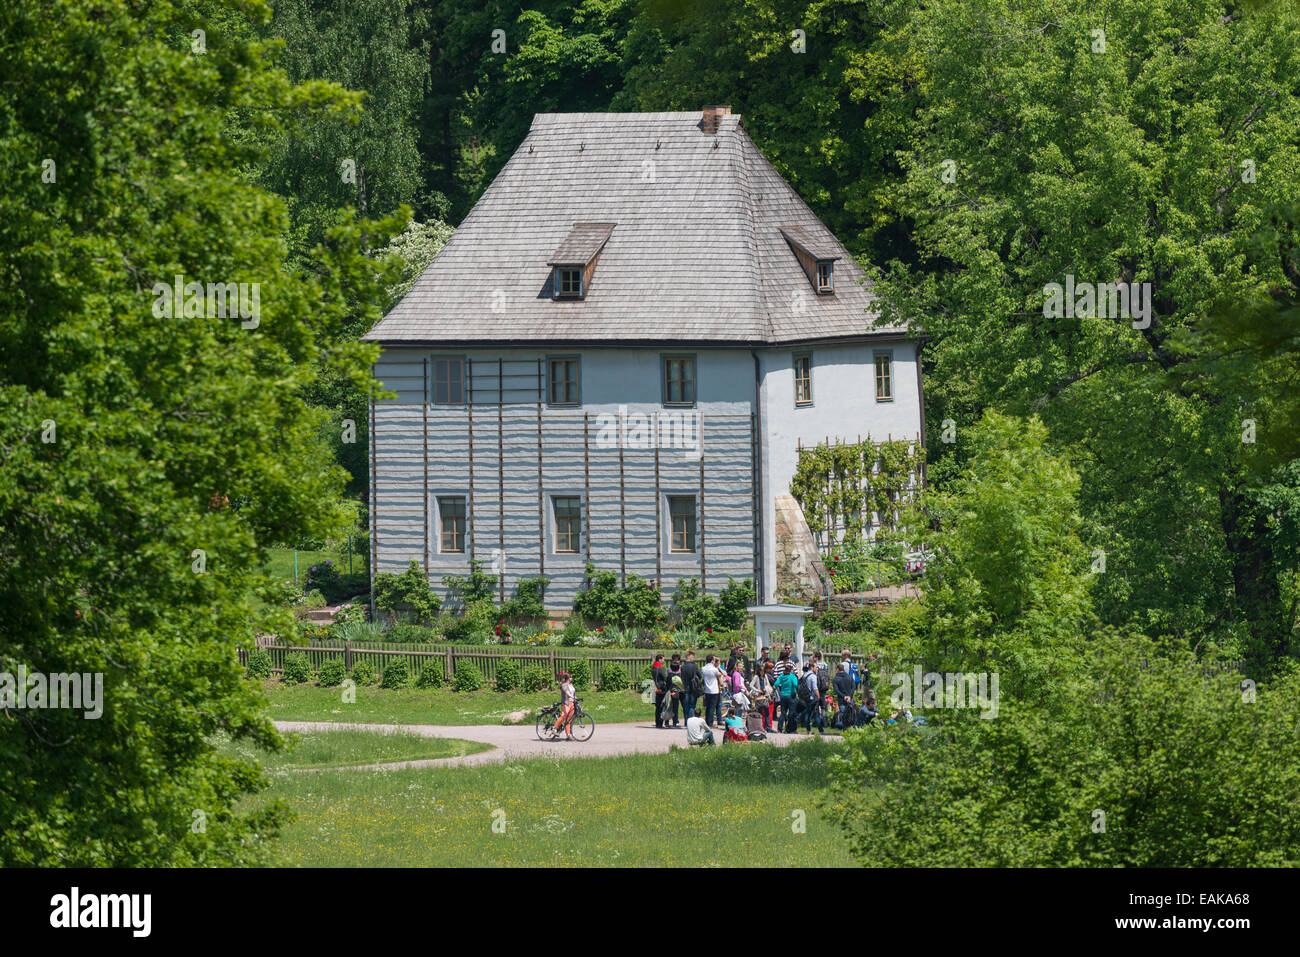 Goethe's garden house, a group of visitors in front, Park an der Ilm, Weimar, Thuringia, Germany - Stock Image